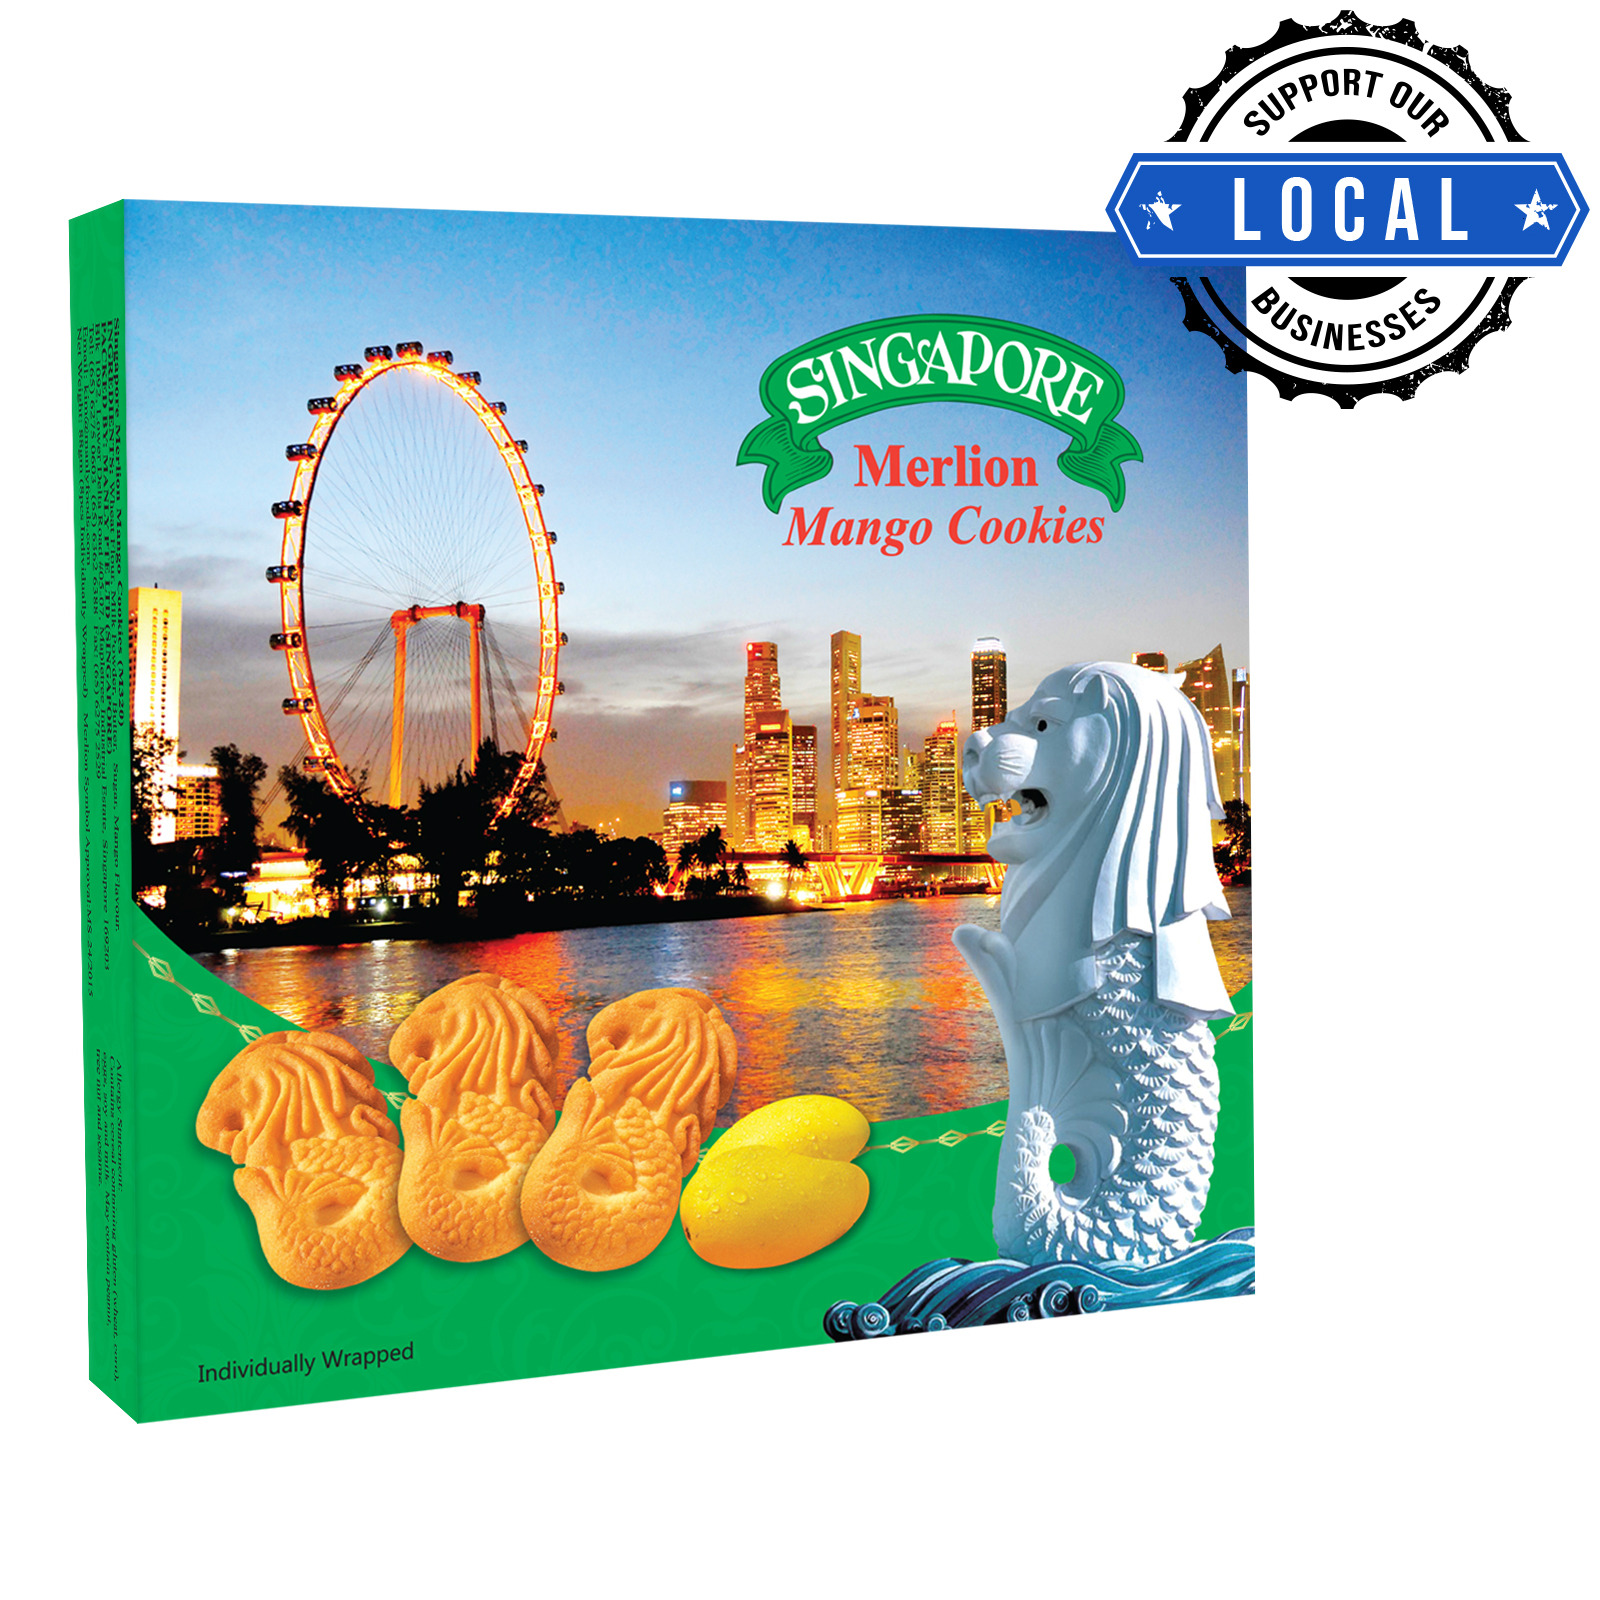 Manly Singapore Merlion Butter Cookies - Mango